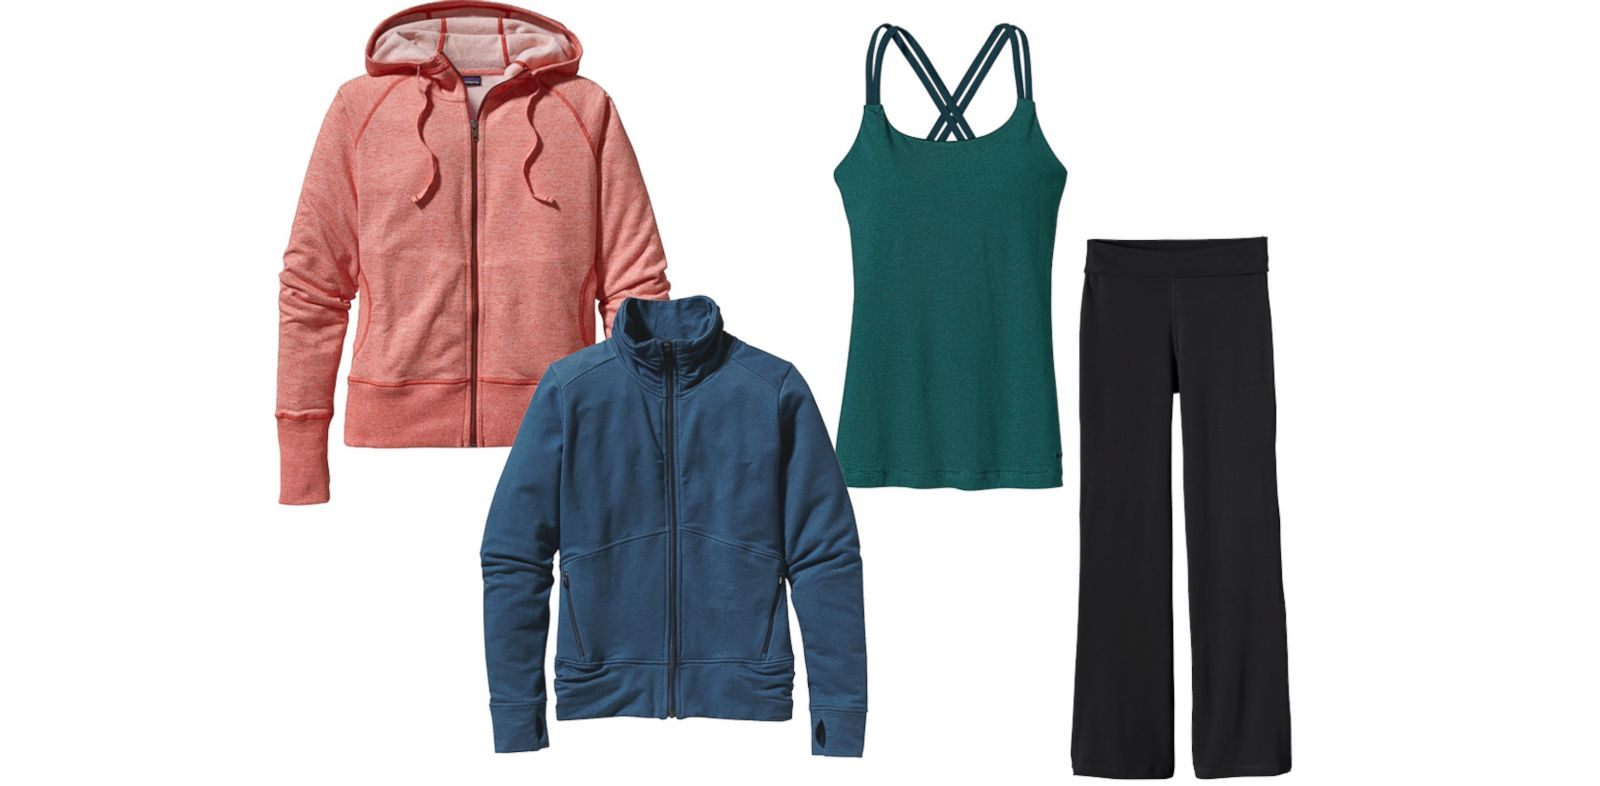 PHOTO: Patagonia Inc. has announced plans to offer Fair Trade Certified apparel in the Fall